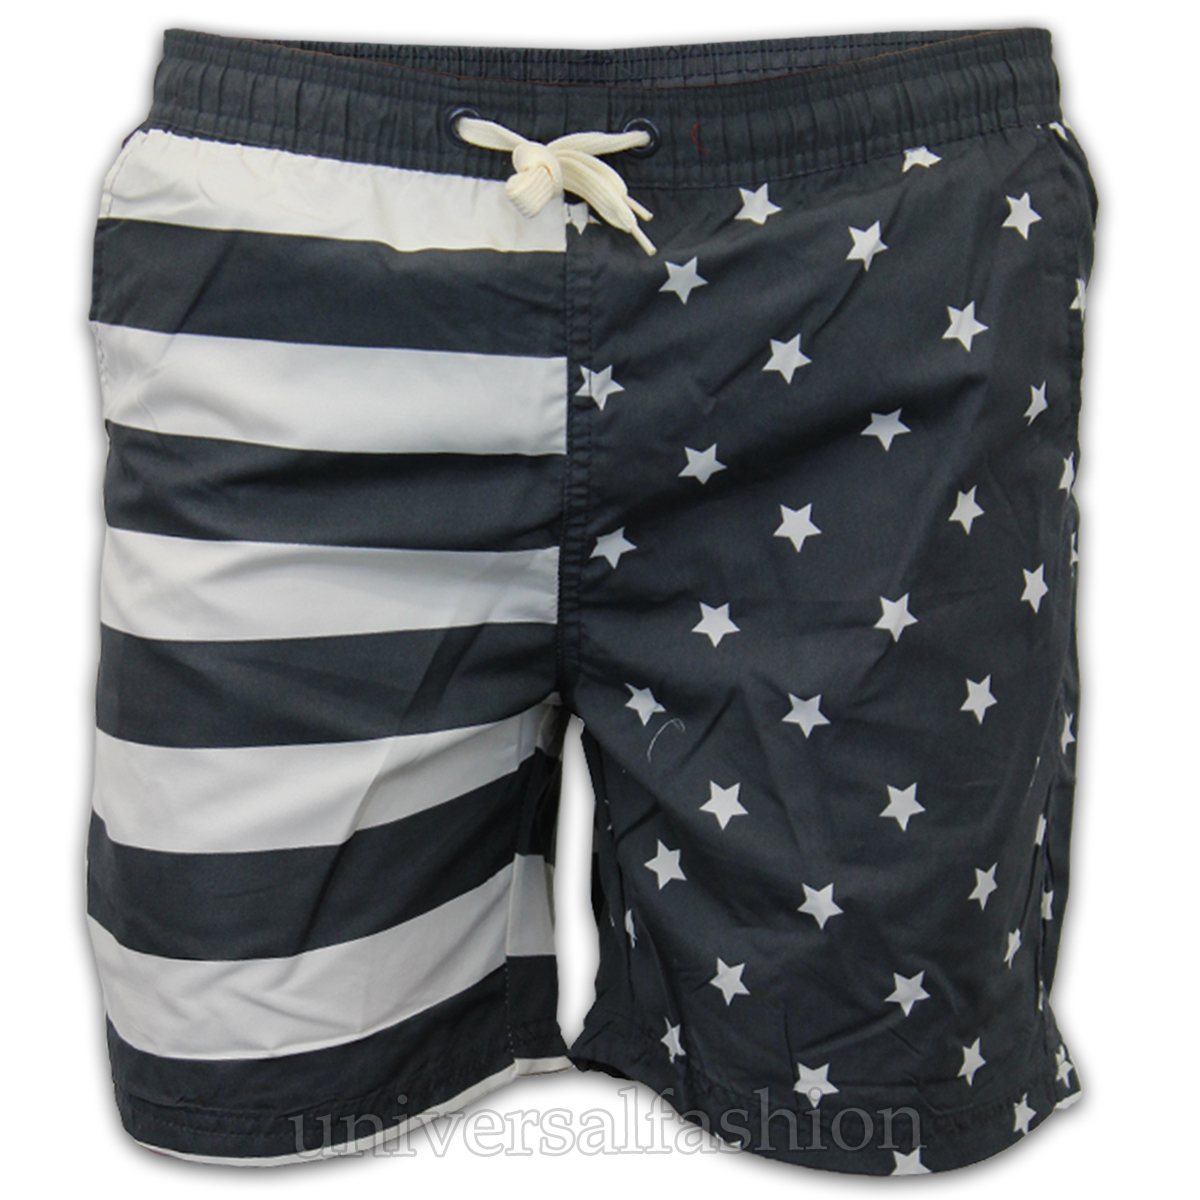 These attractive men's American Flag swim trunks display the stars and stripes in a whole new way. The waistband is white, elasticized, and includes a drawstring closure to help you keep it all together.5/5().